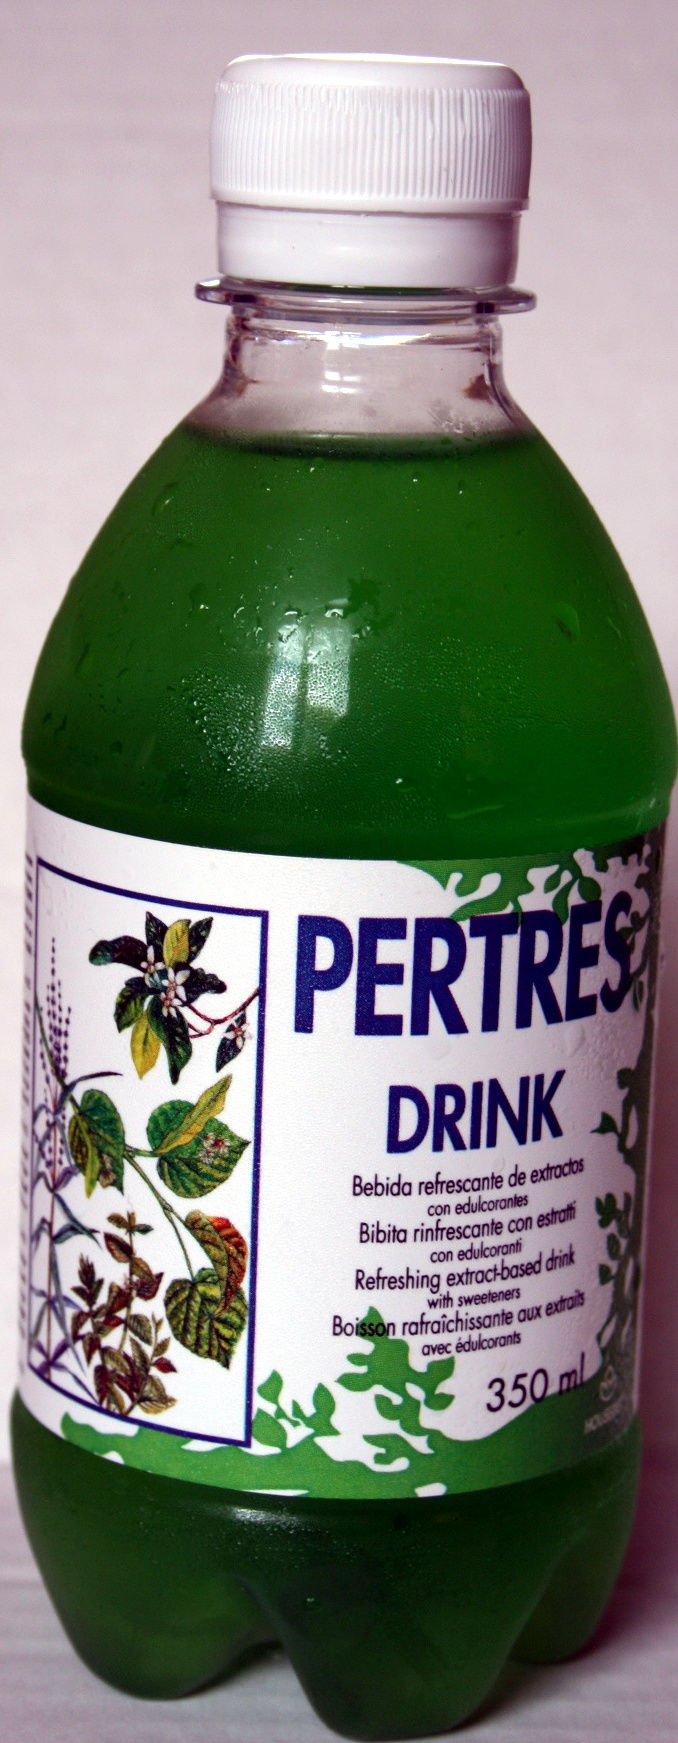 Pertres Drink - Product